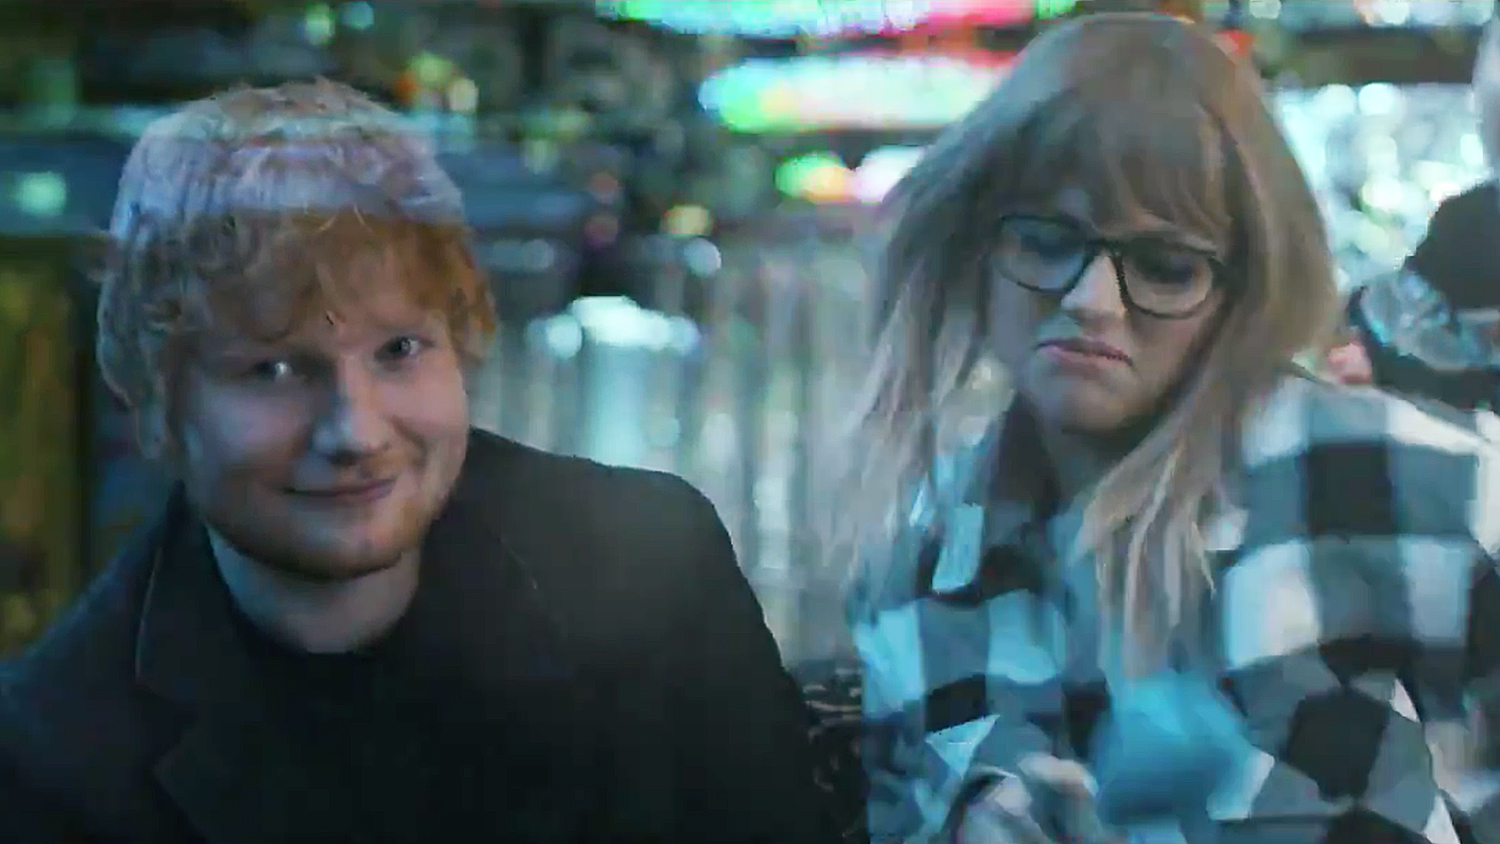 Taylor Swift - End Game (feat. Ed Sheeran & Future)